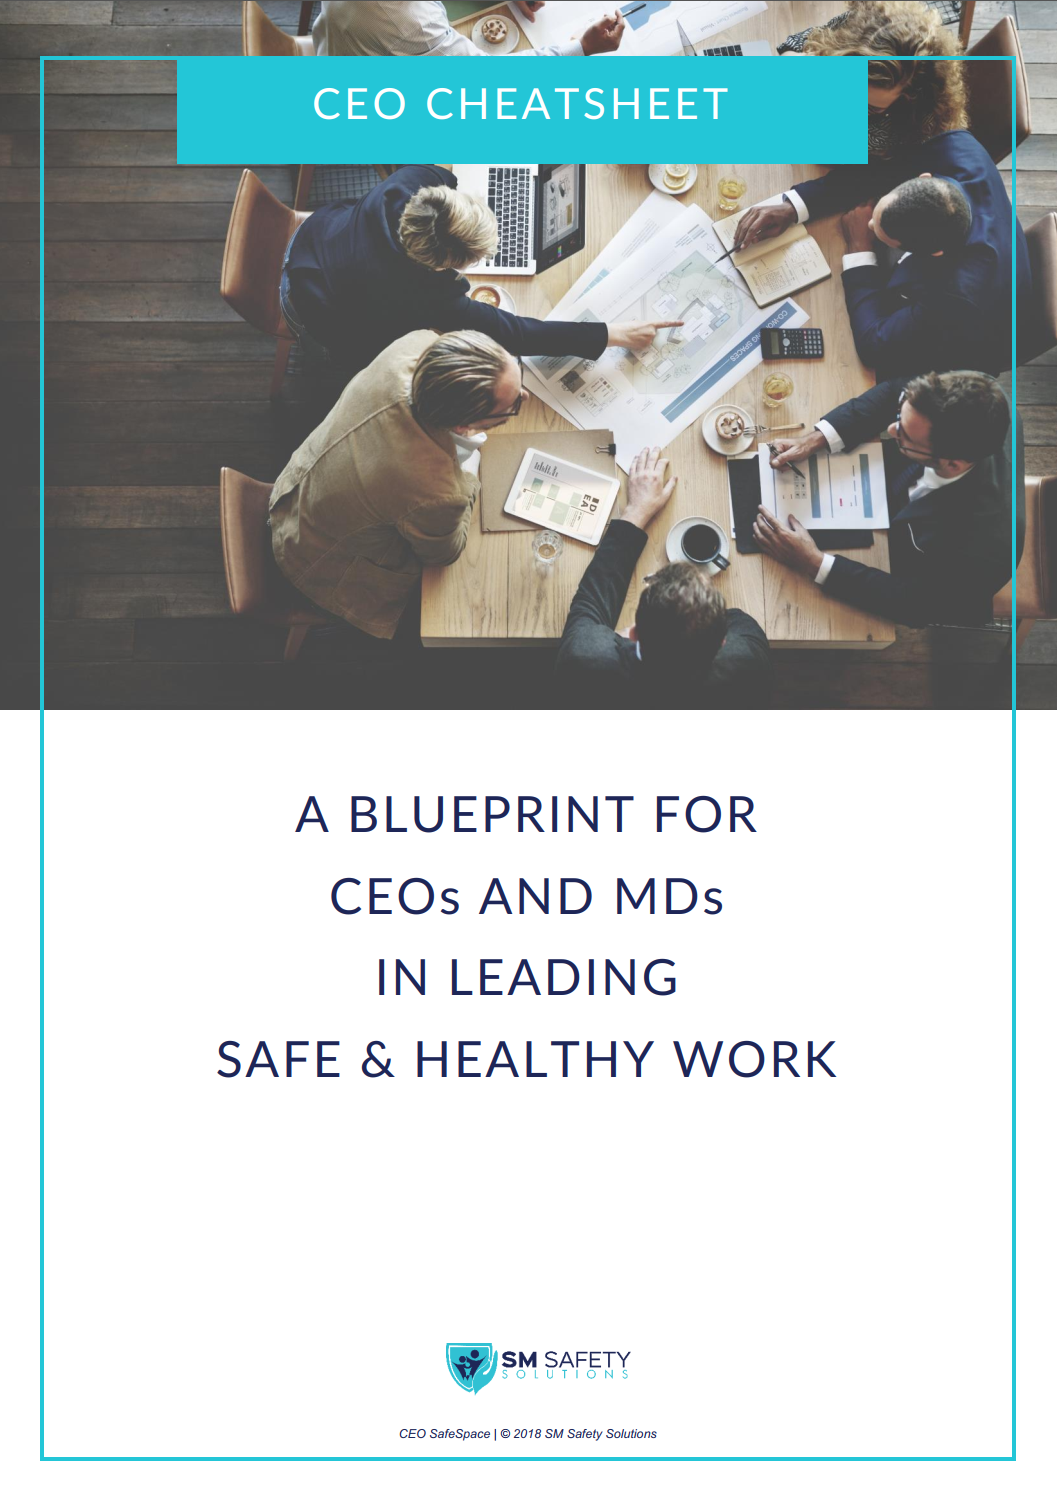 CEO health and safety